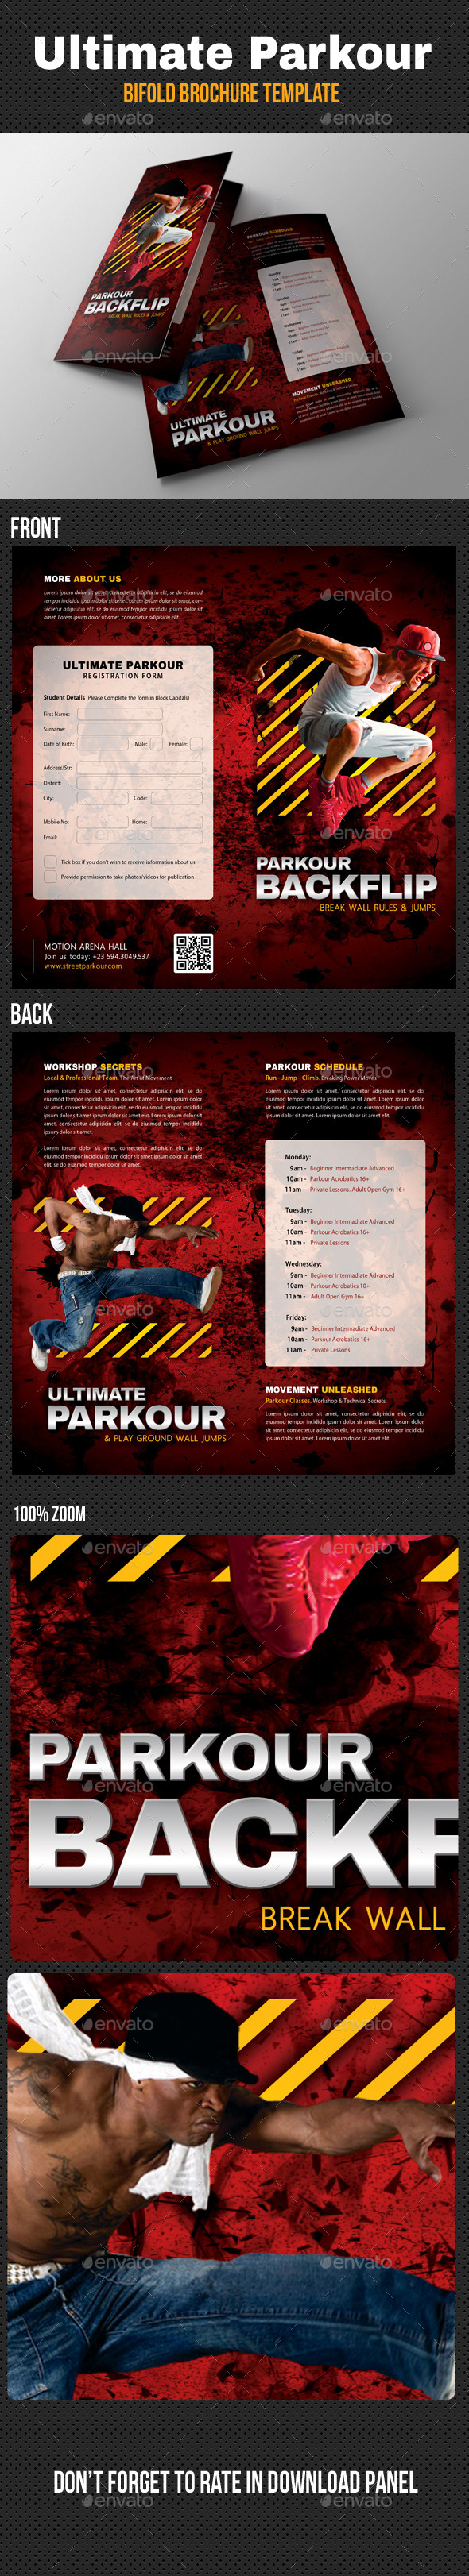 Ultimate Parkour Bifold Brochure V2